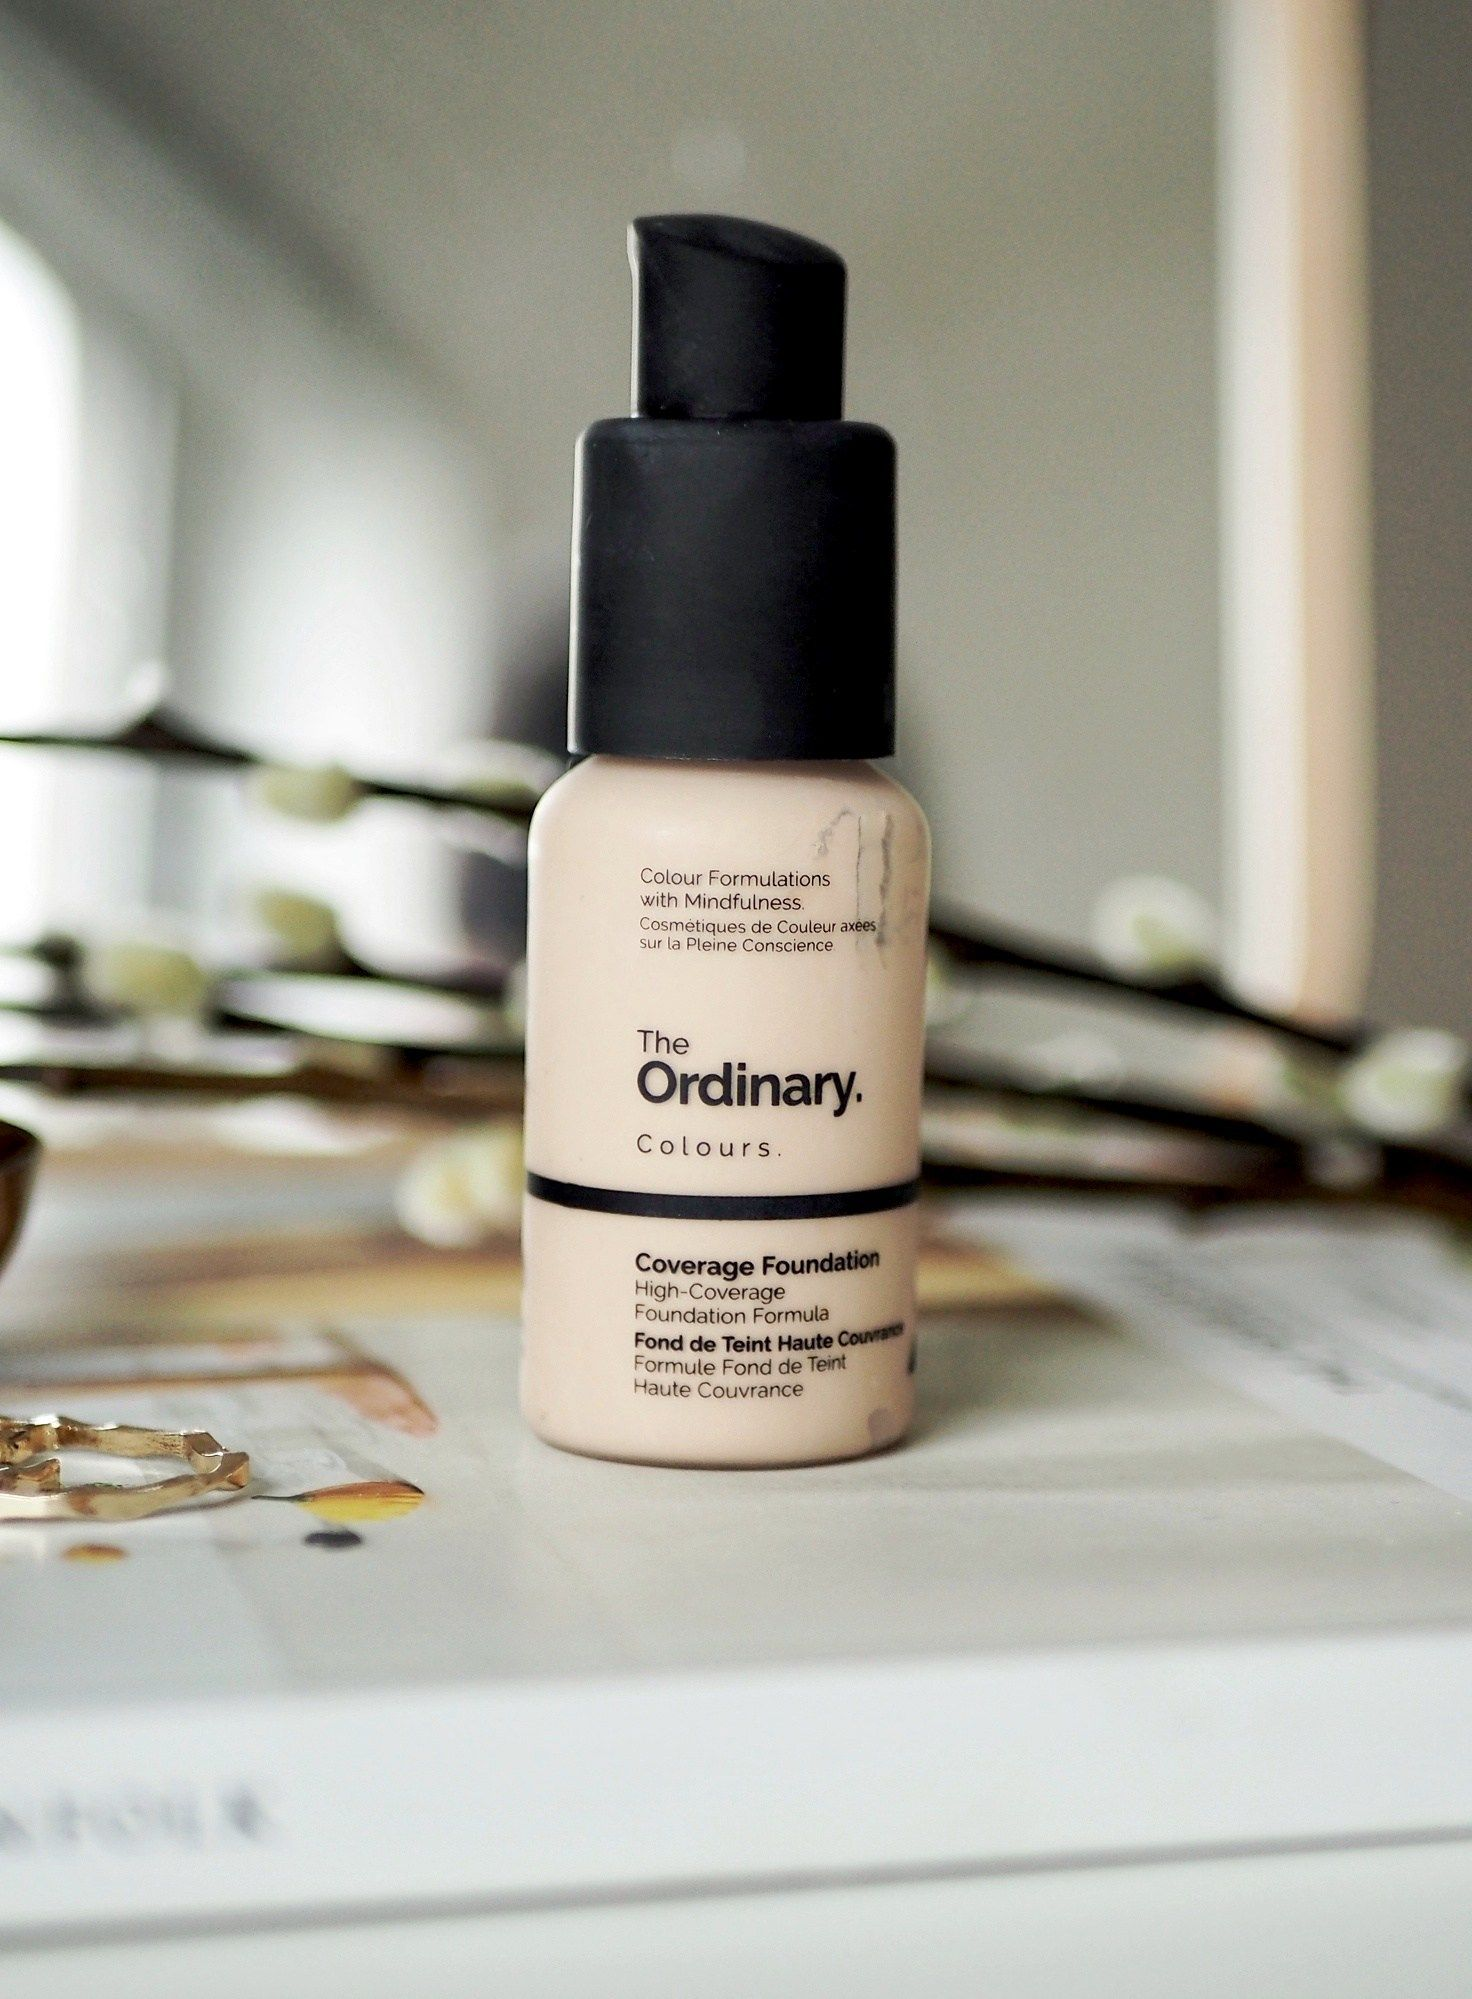 The Most Hyped Foundation Ever (With images) The